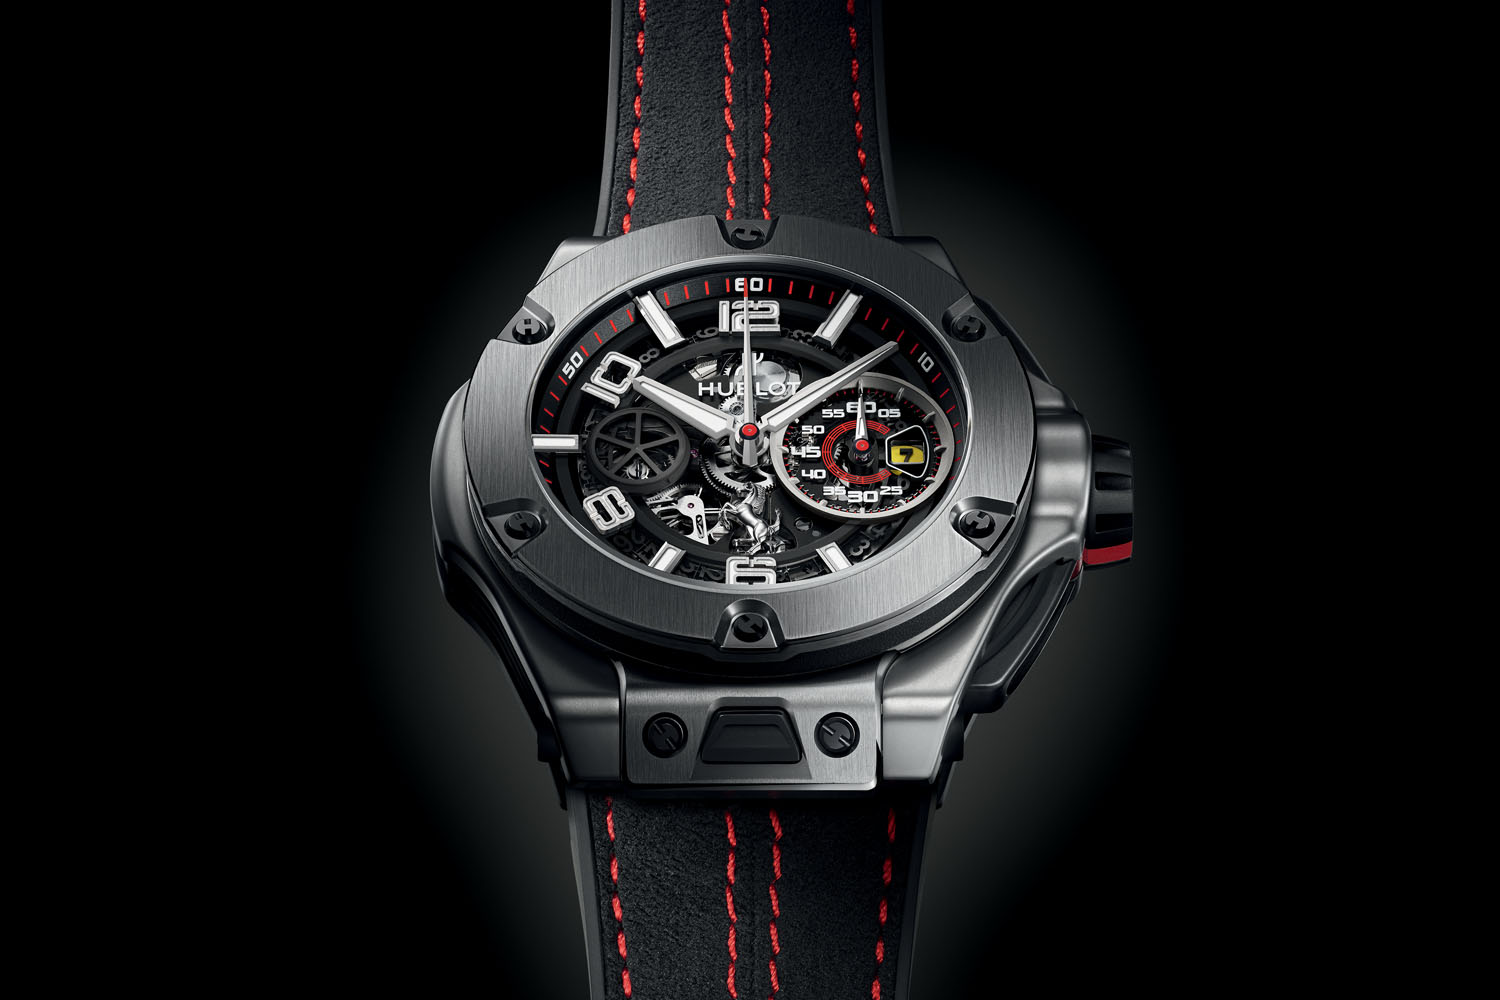 Hublot Big Bang Ferrari Unico Chronograph